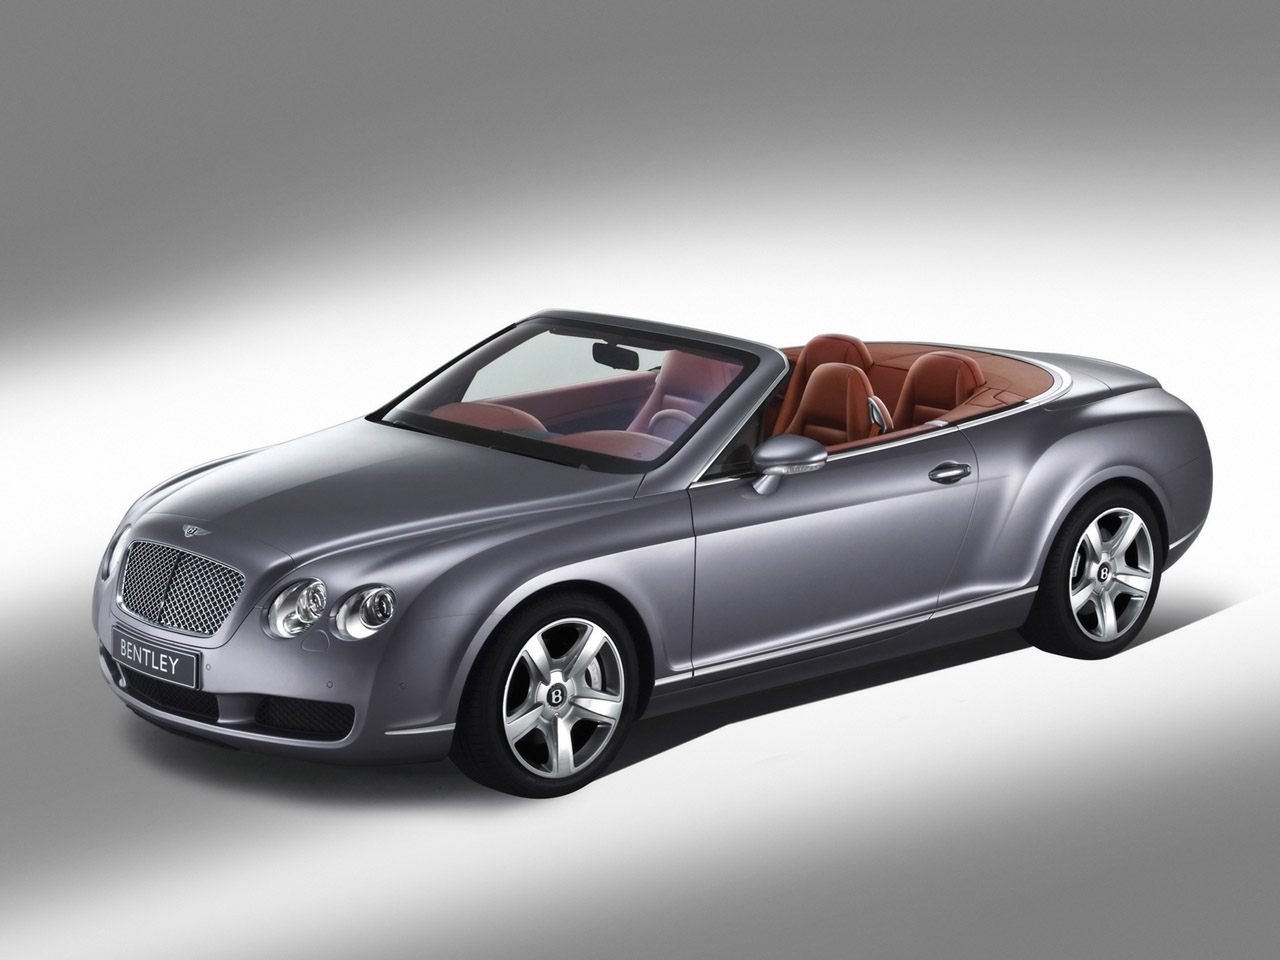 Bentley Continental GTC #6